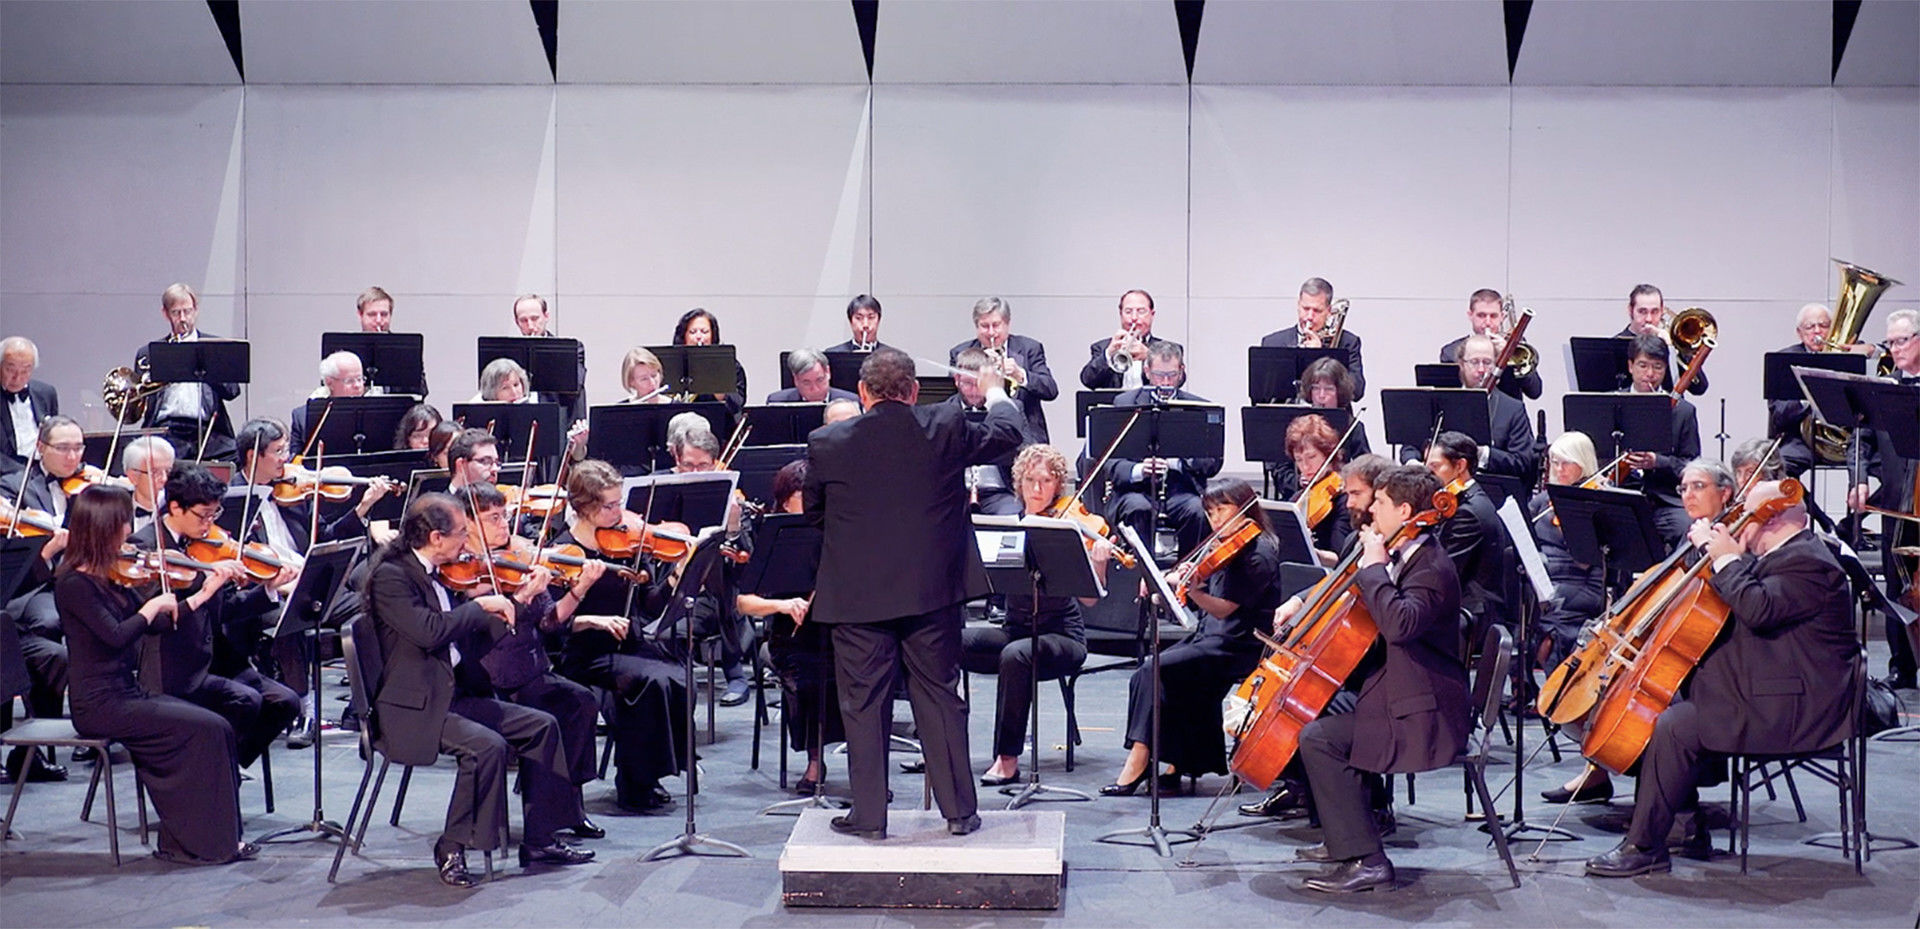 Silicon Valley Really Is Having More Fun Playing Music in Community  Orchestras  adb99892f42fa